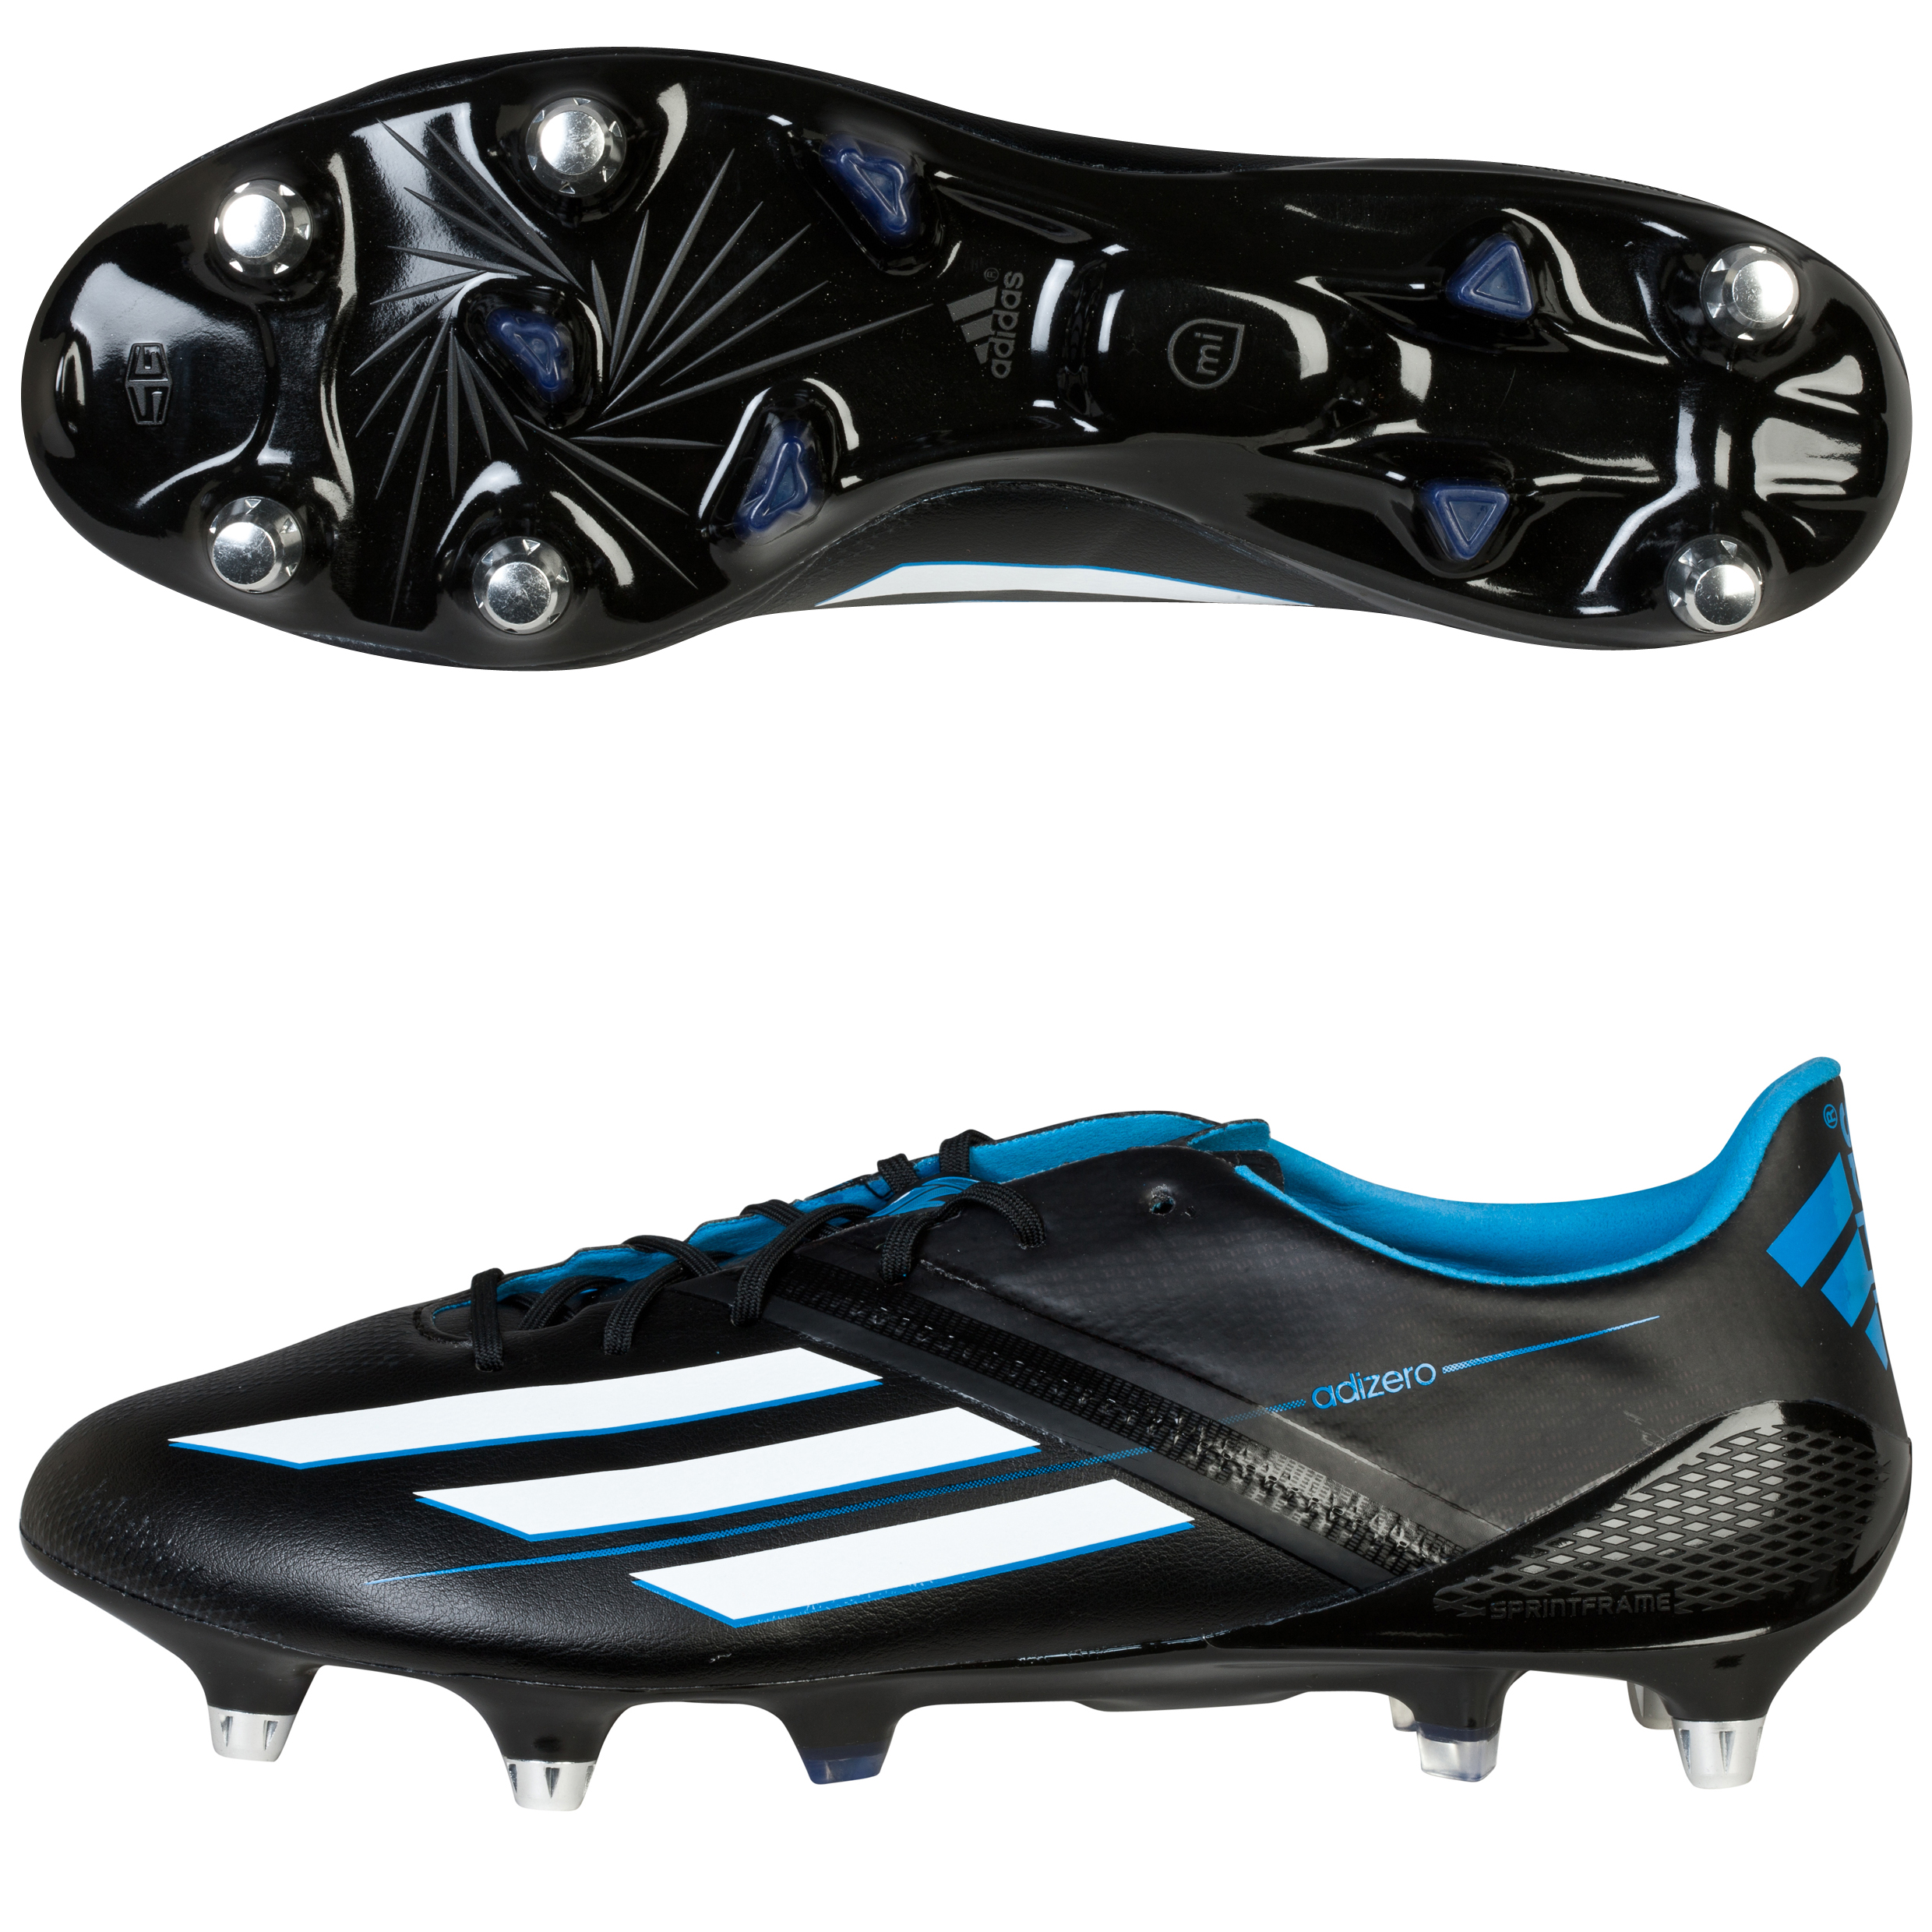 Adidas F50 adiZero XTRX Soft Ground Football Boots Black